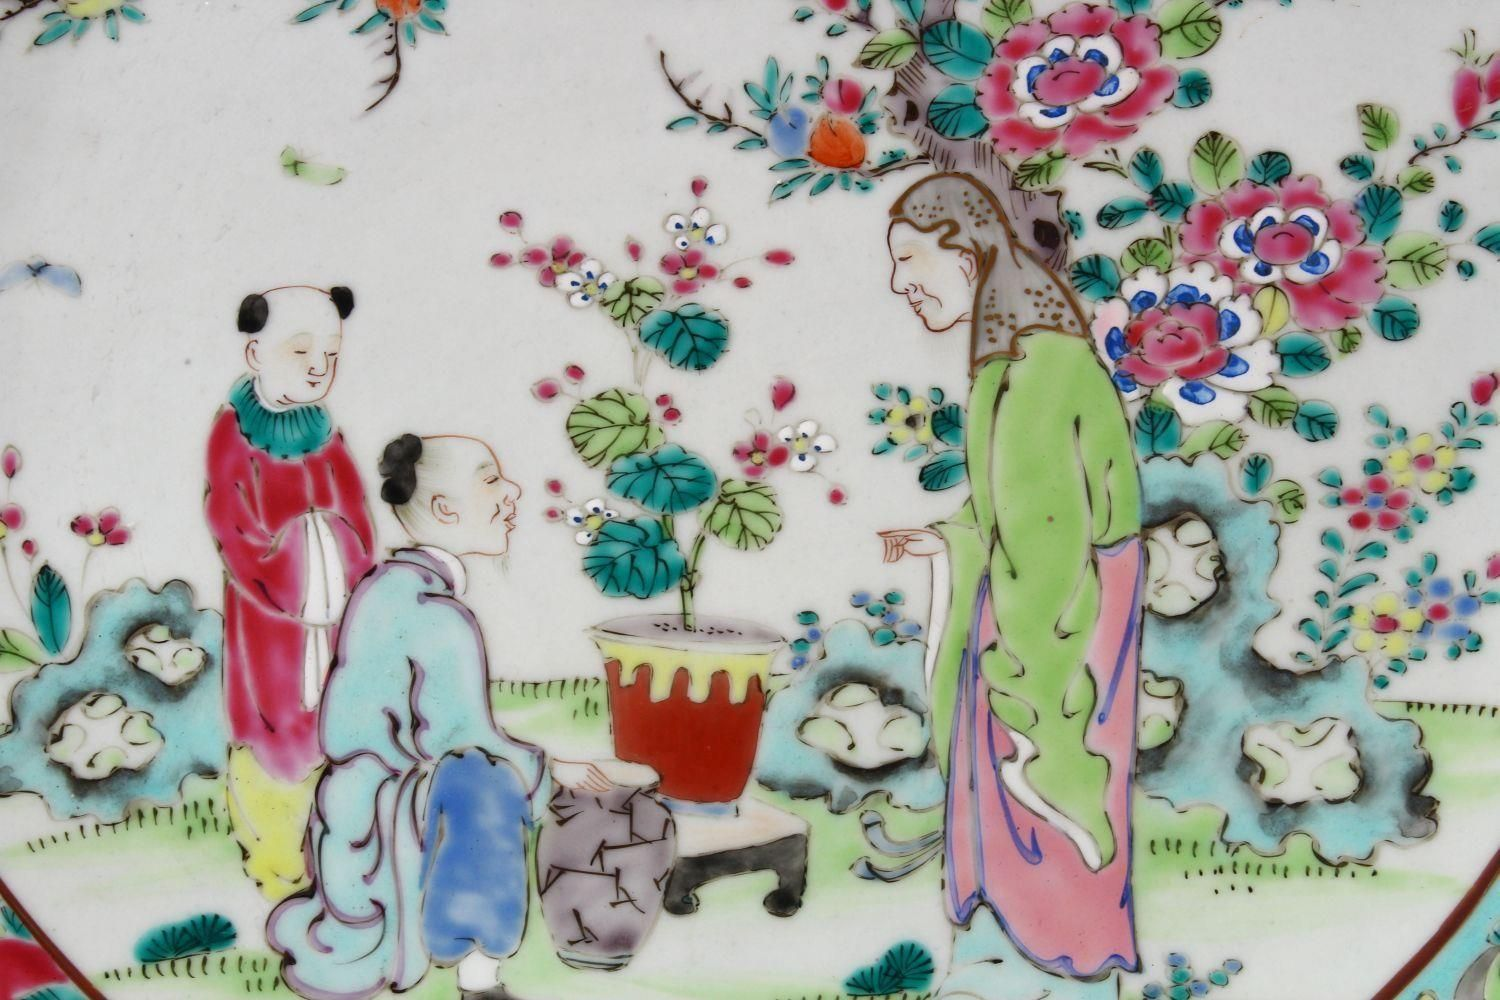 A 19TH CENTURY CHINESE FAMILLE ROSE PORCELAIN PLATE OF SCHOLARS, the decoration depicting a - Image 2 of 9